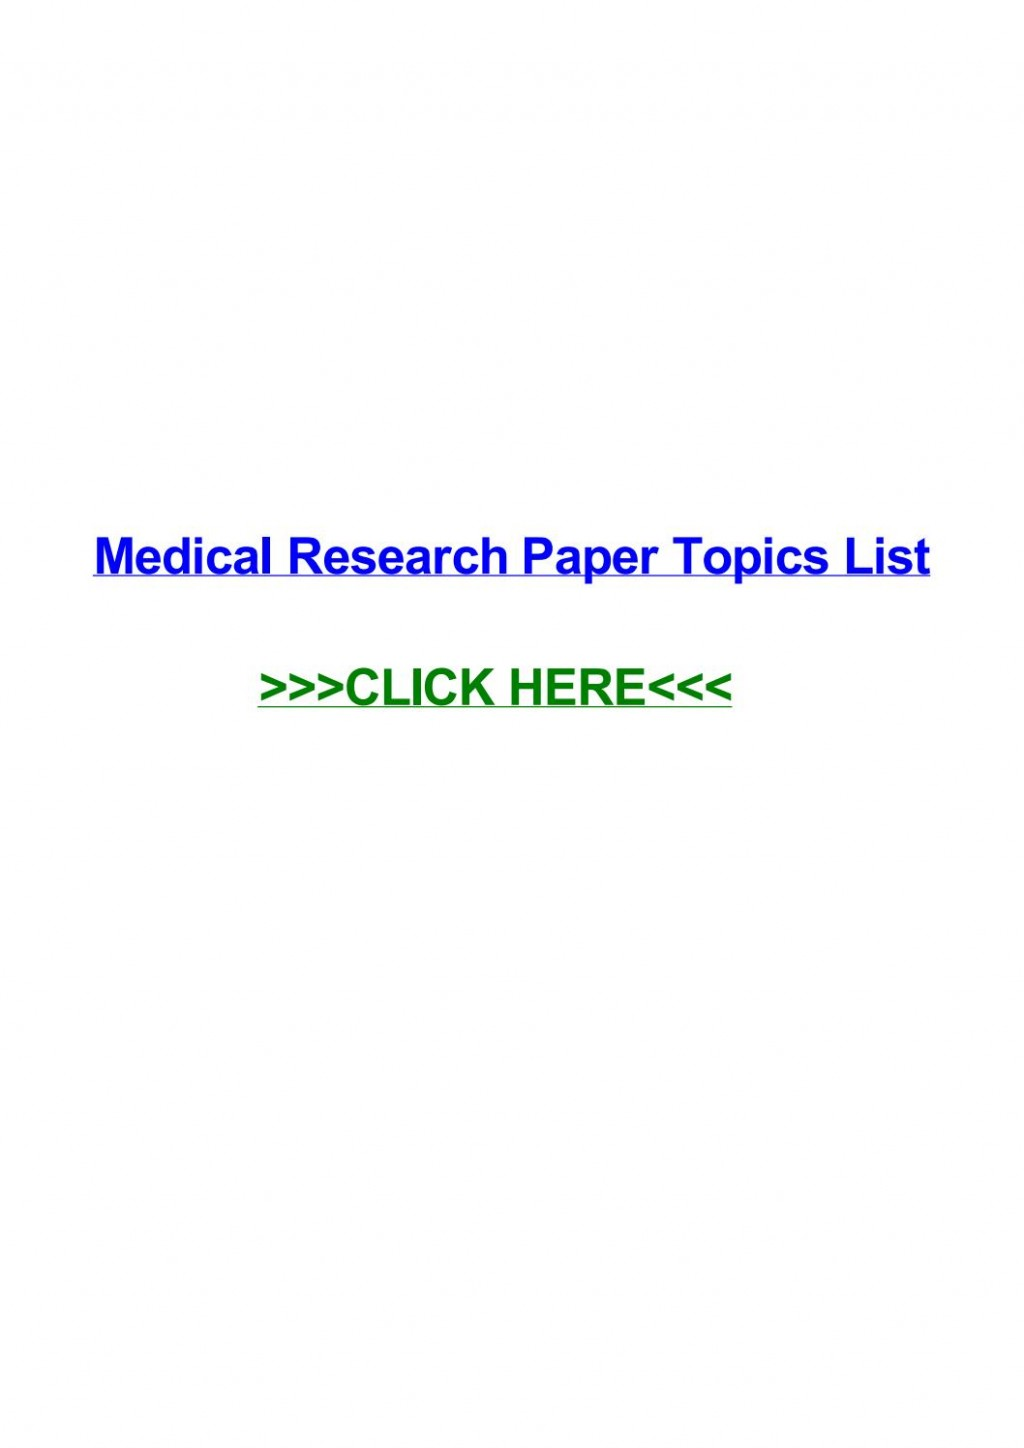 008 Research Paper Medical Topics Page 1 Magnificent Microbiology Argumentative Large